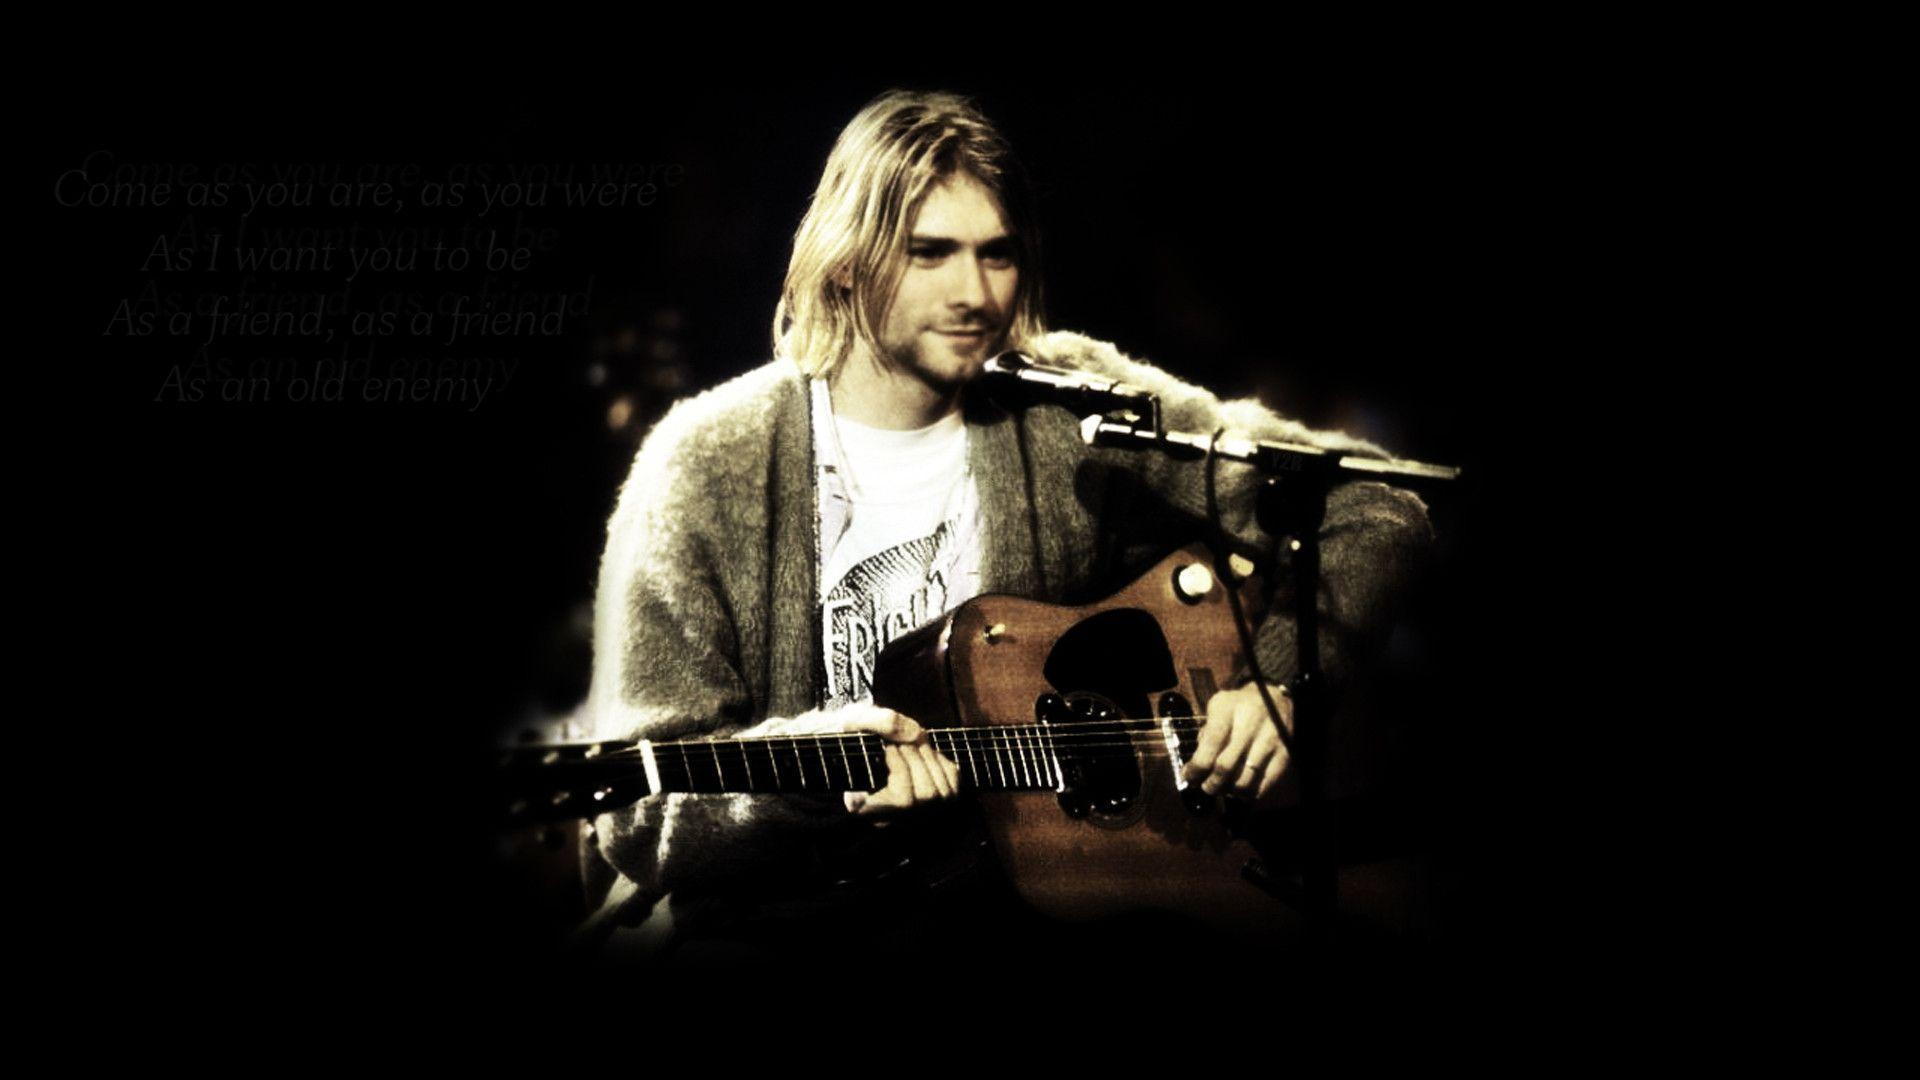 Kurt Cobain Backgrounds